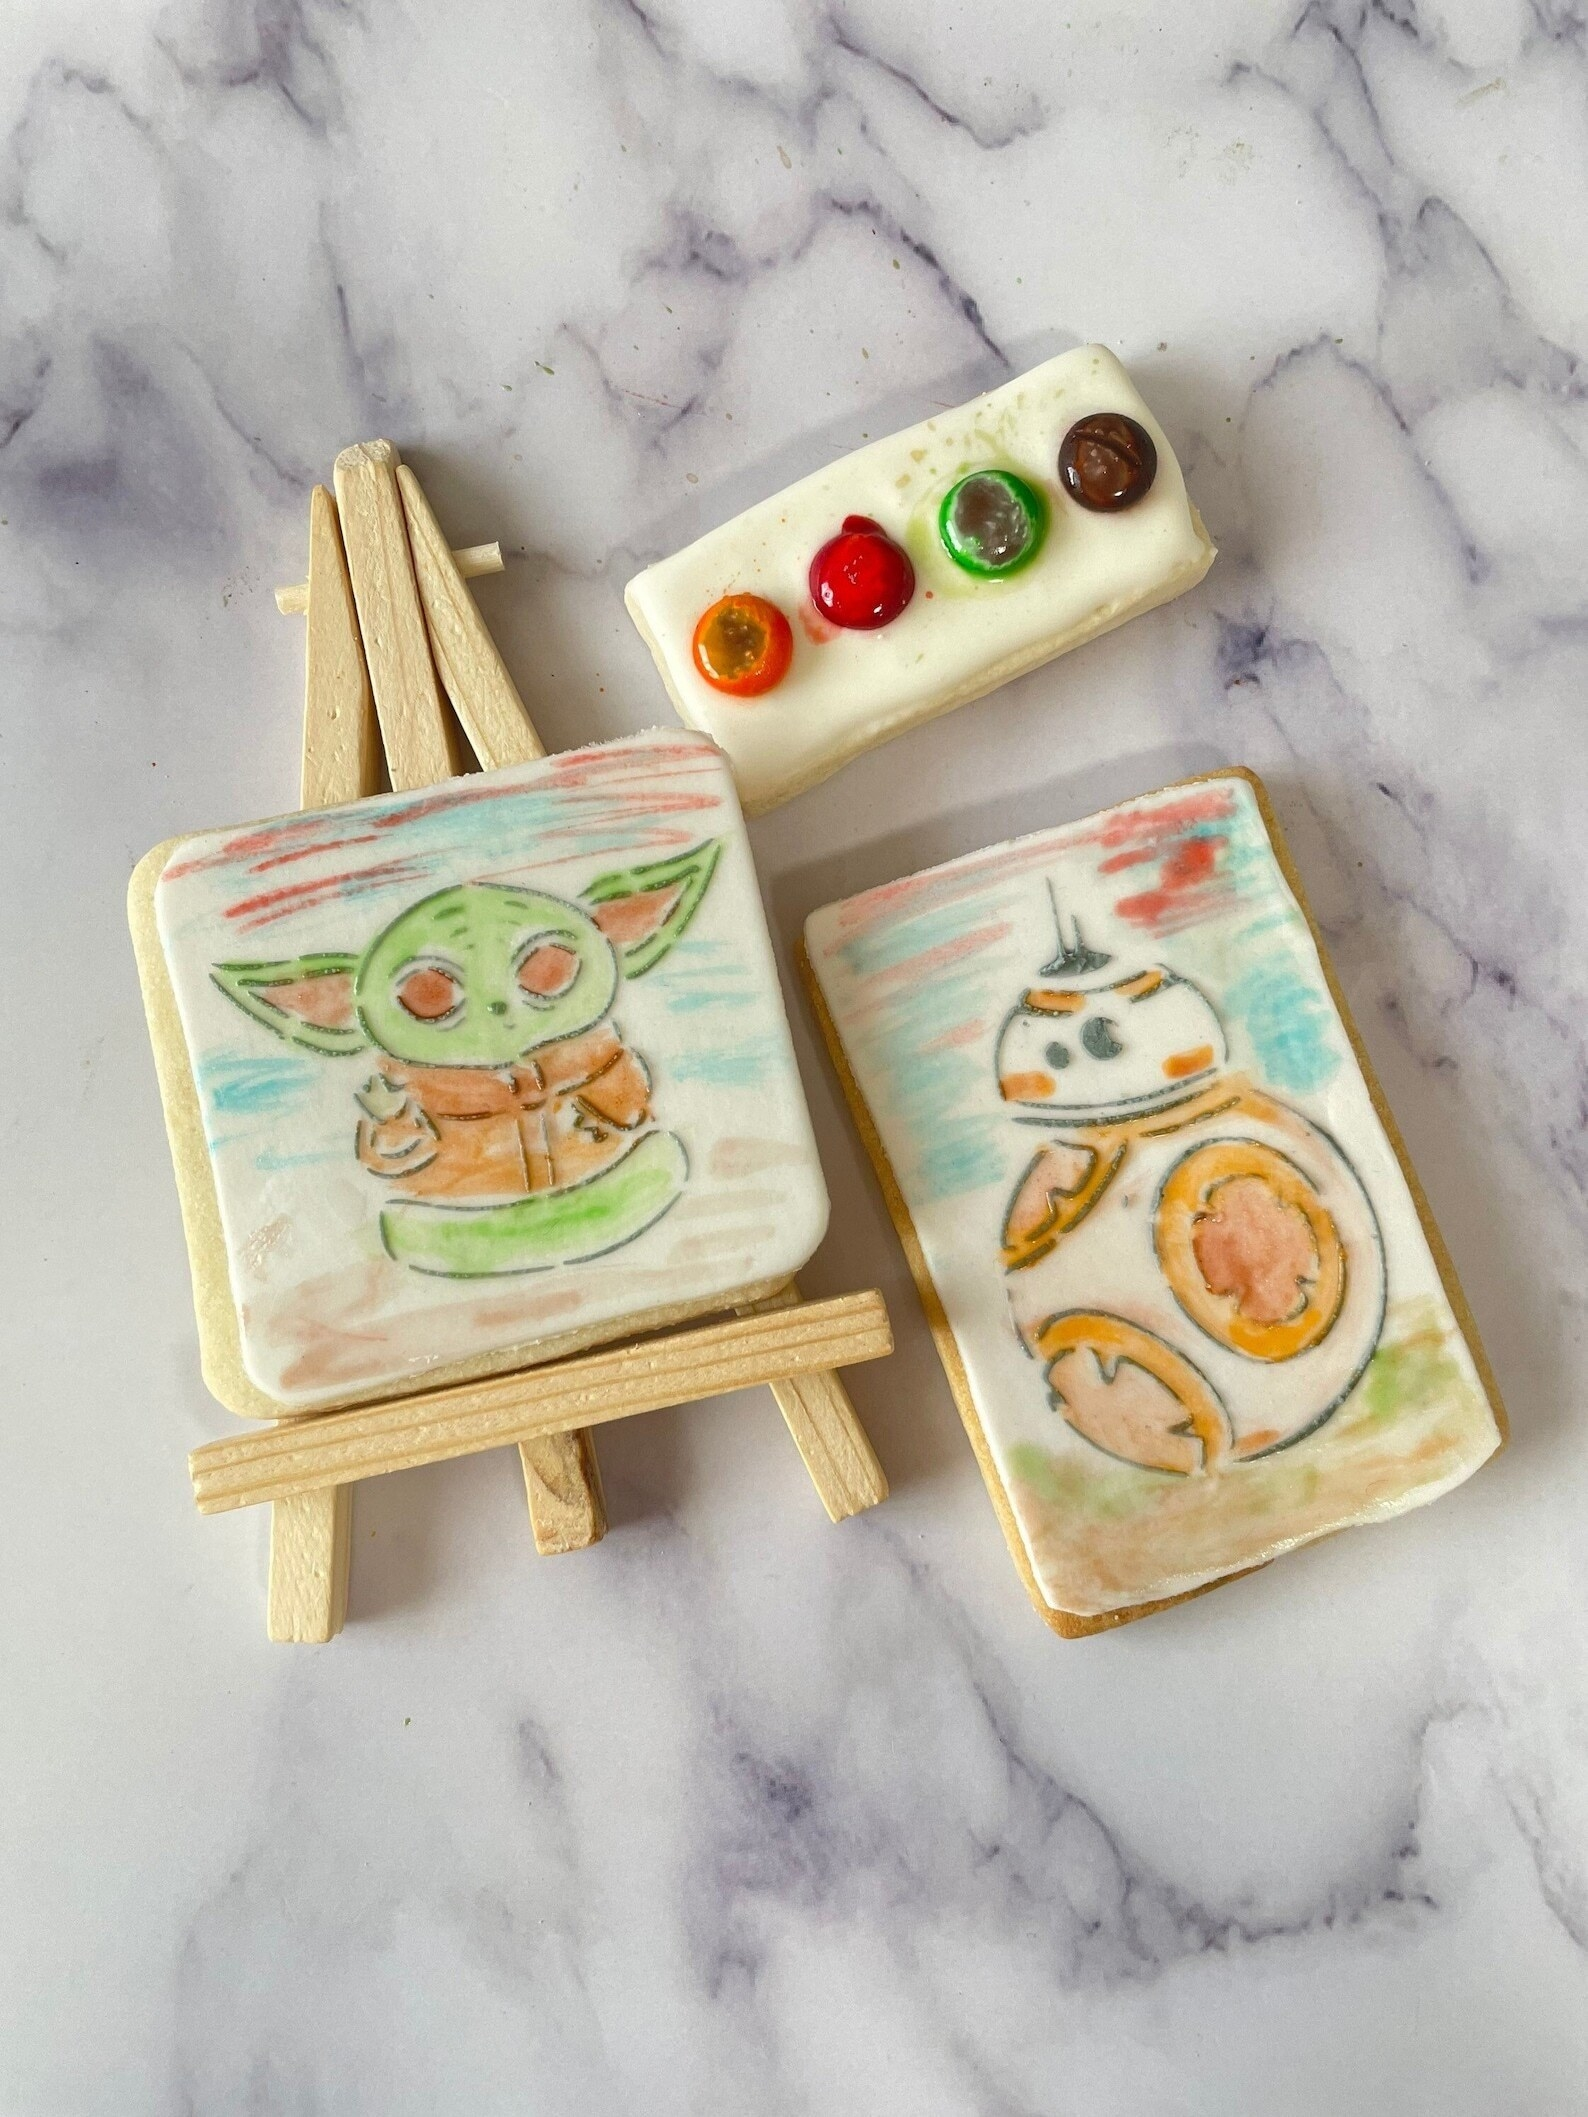 two cookies with a star wars character on each. they have been painted with m&m chocolates that are placed on a third cookie to look like a painting pallet. it comes with a small wooden easel.